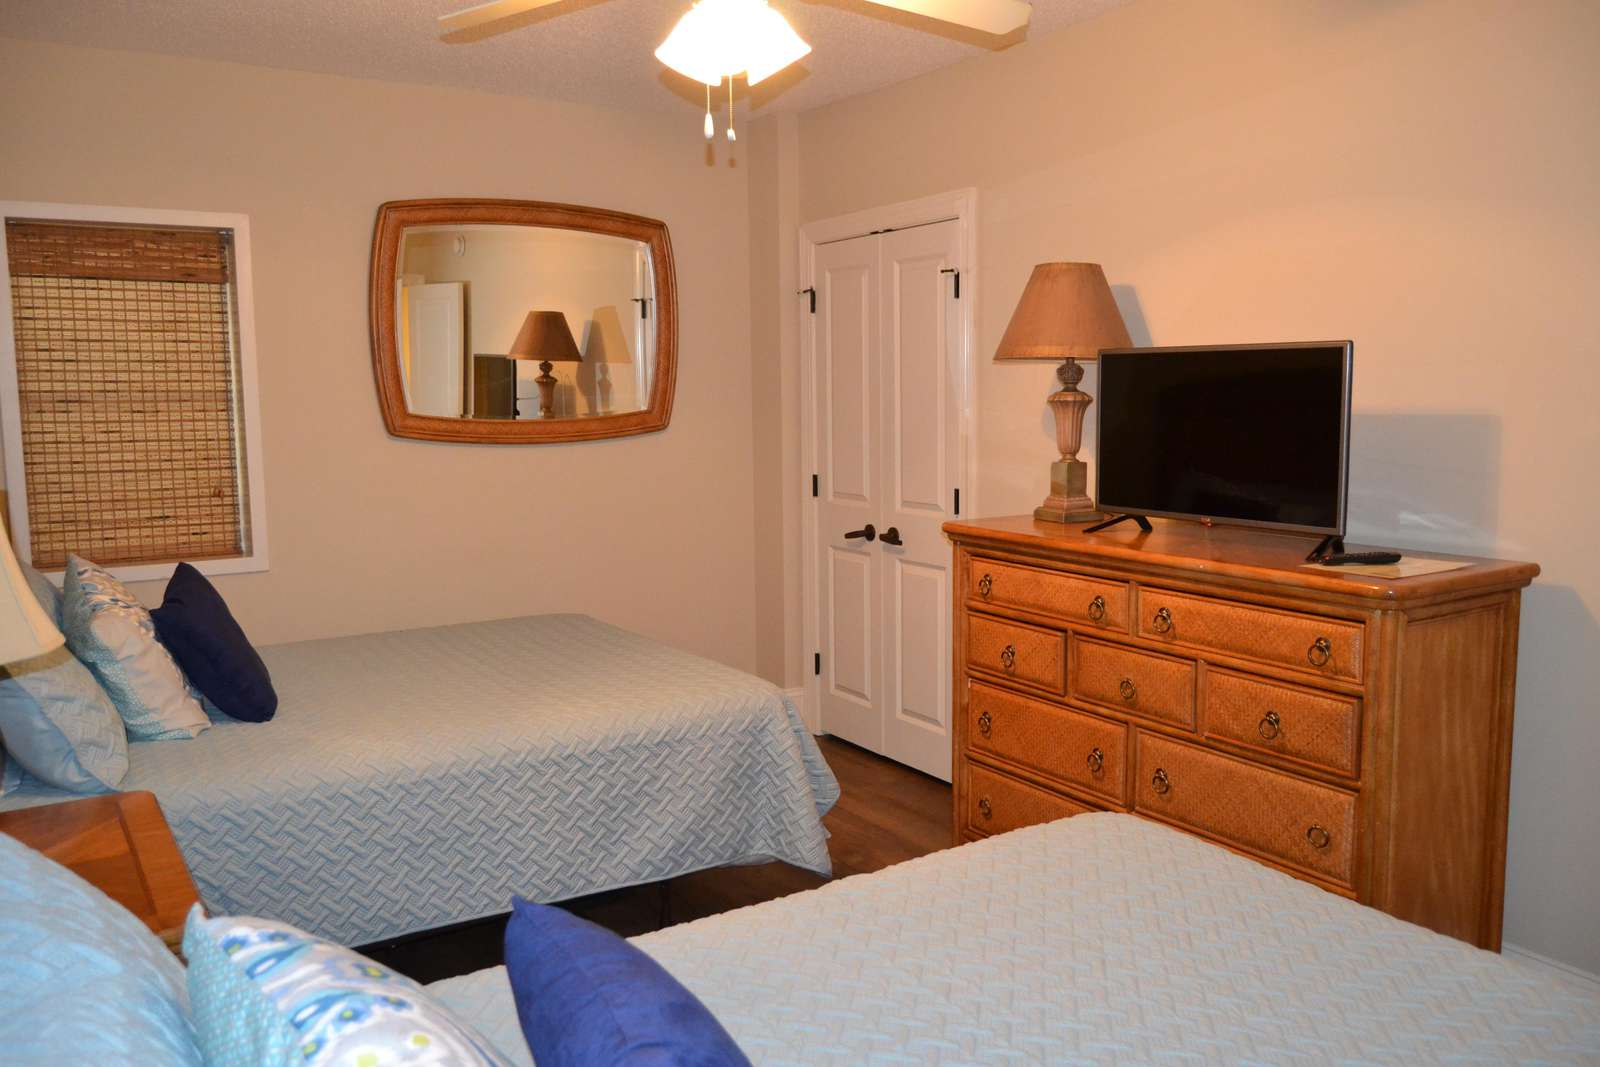 Guest bedroom, flat screen, wifi and cable